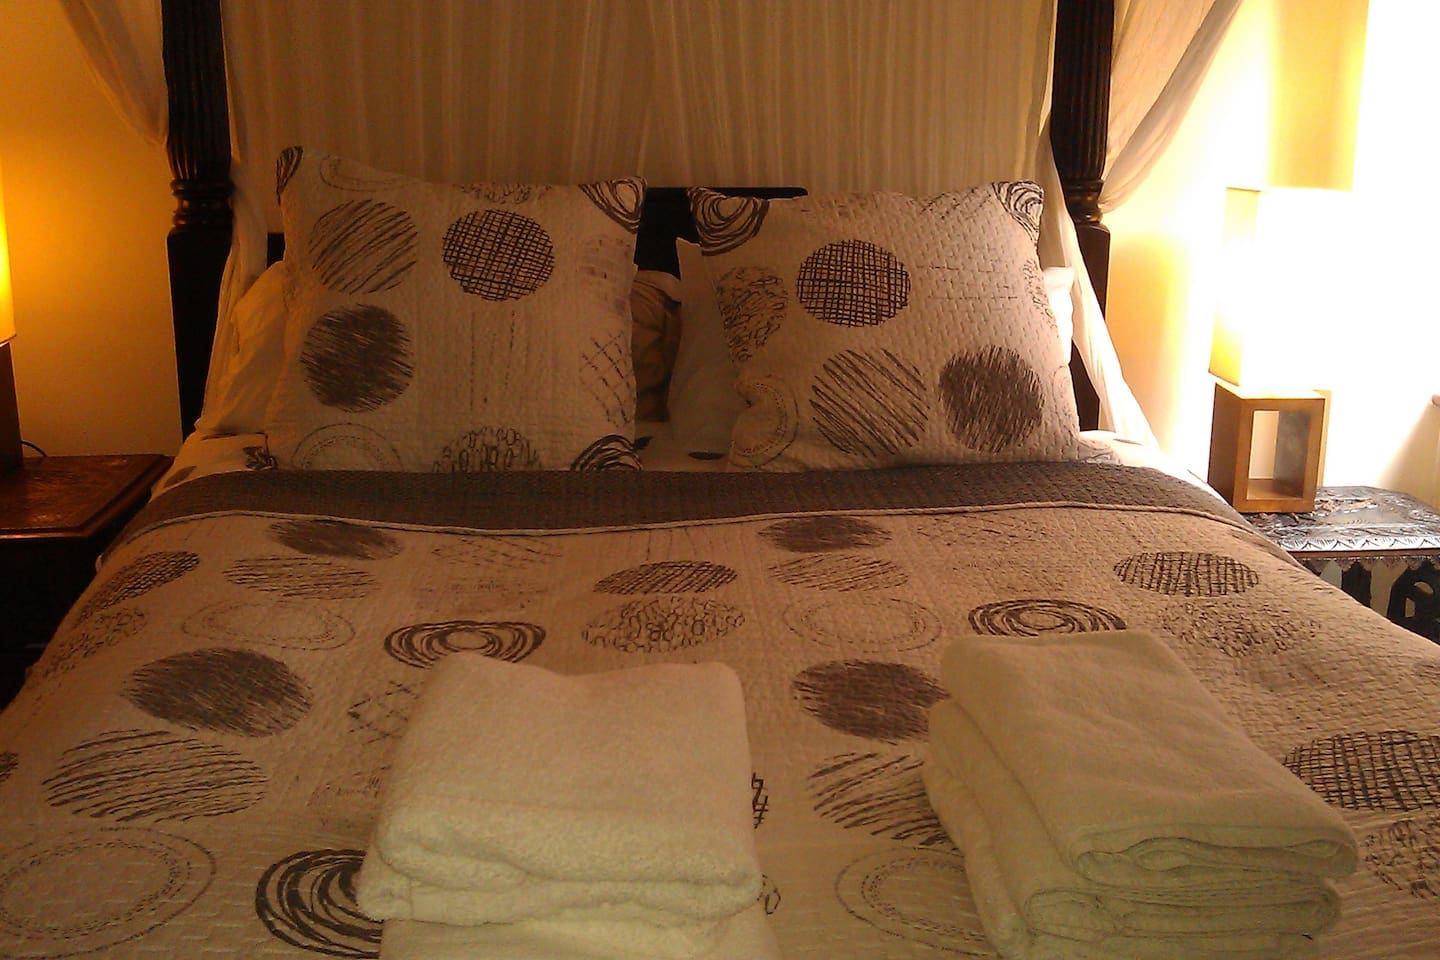 Comfortable King Size bed with writing area, wardrobe shelves and mirrors. Unlimted WiFi is accessible for no extra charge